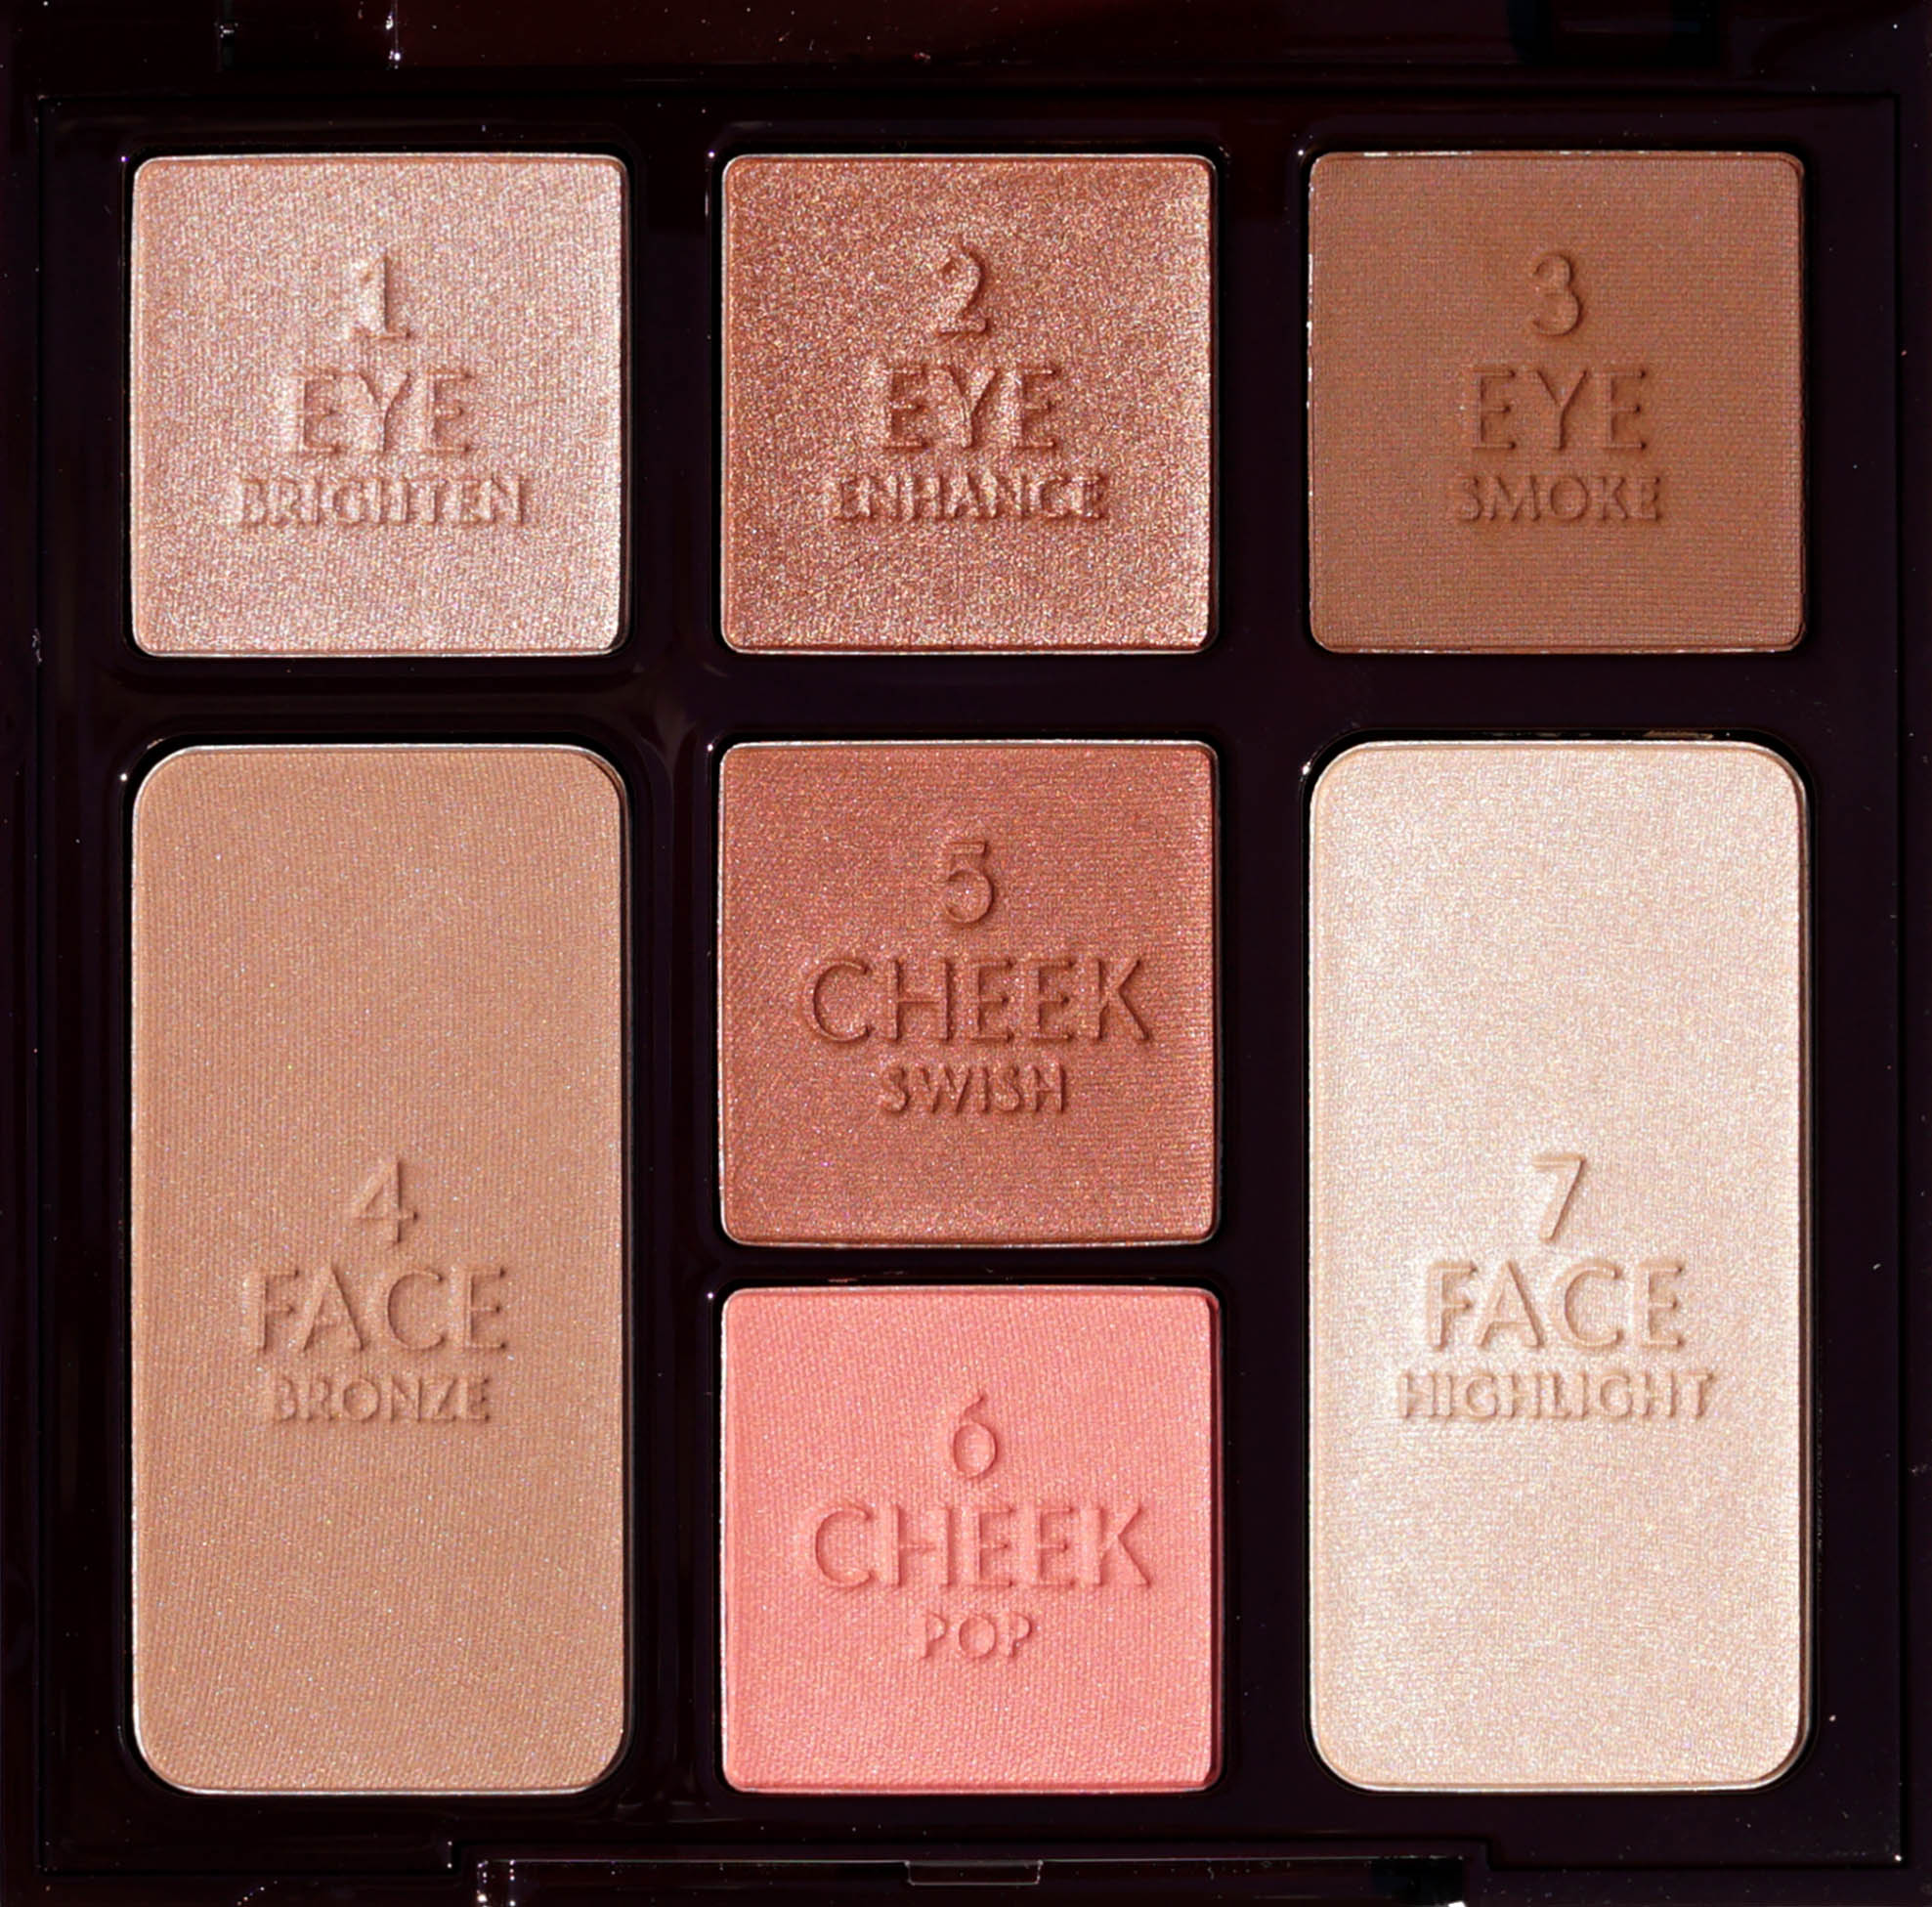 Charlotte Tilbury Instant Look In A Palette Beauty Glow The Beauty Look Book